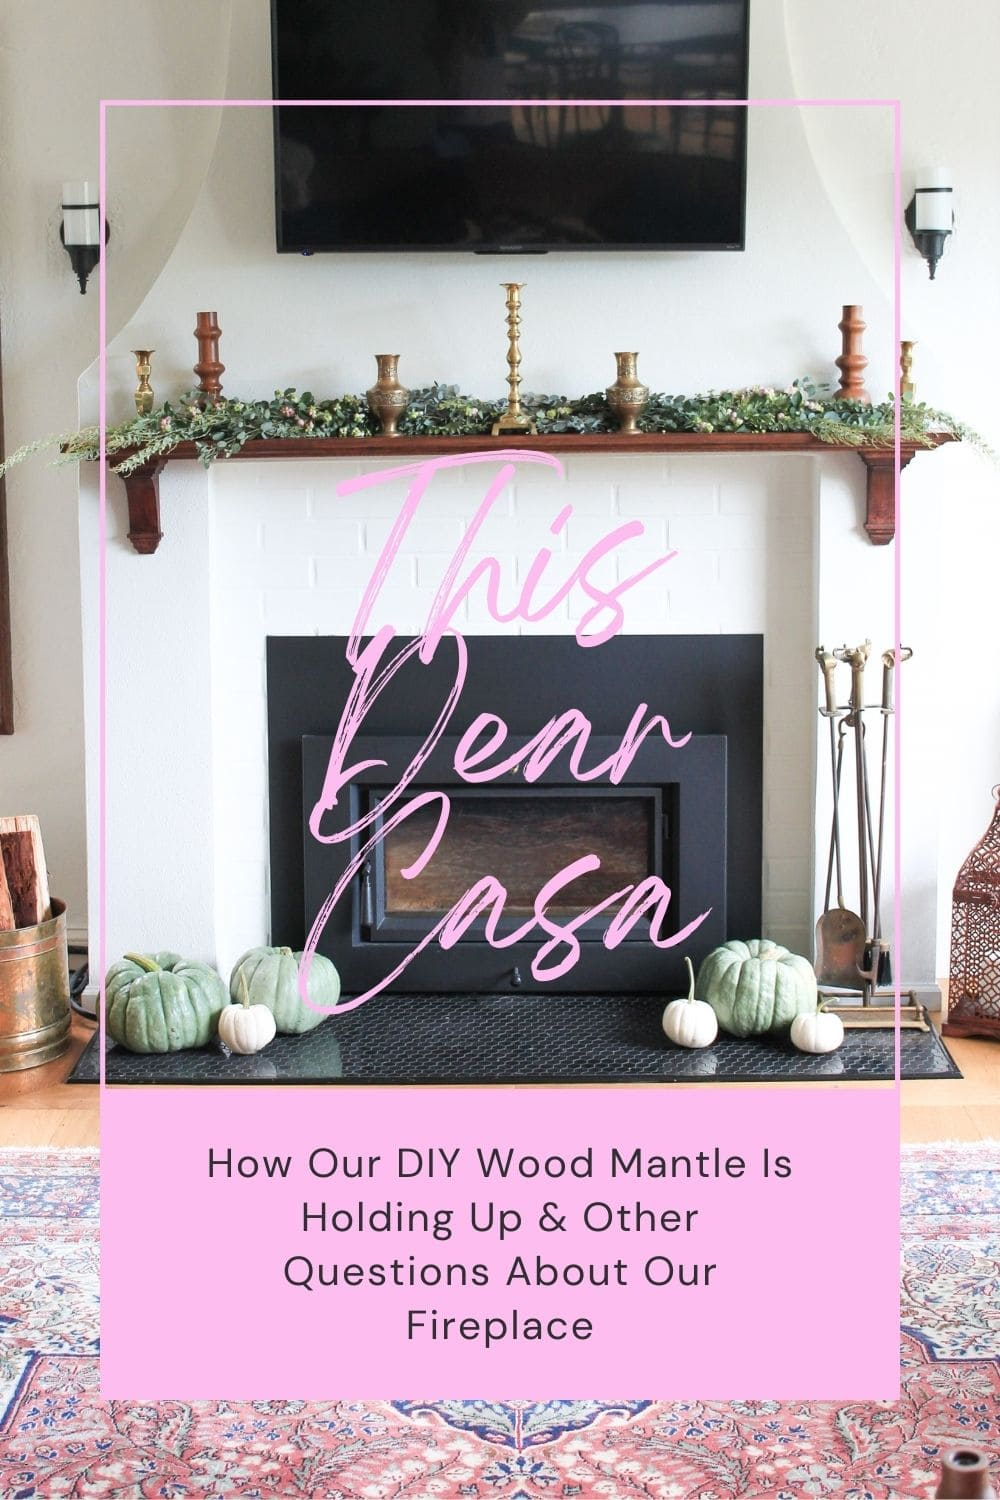 How Our DIY Wood Mantle Is Holding Up & More